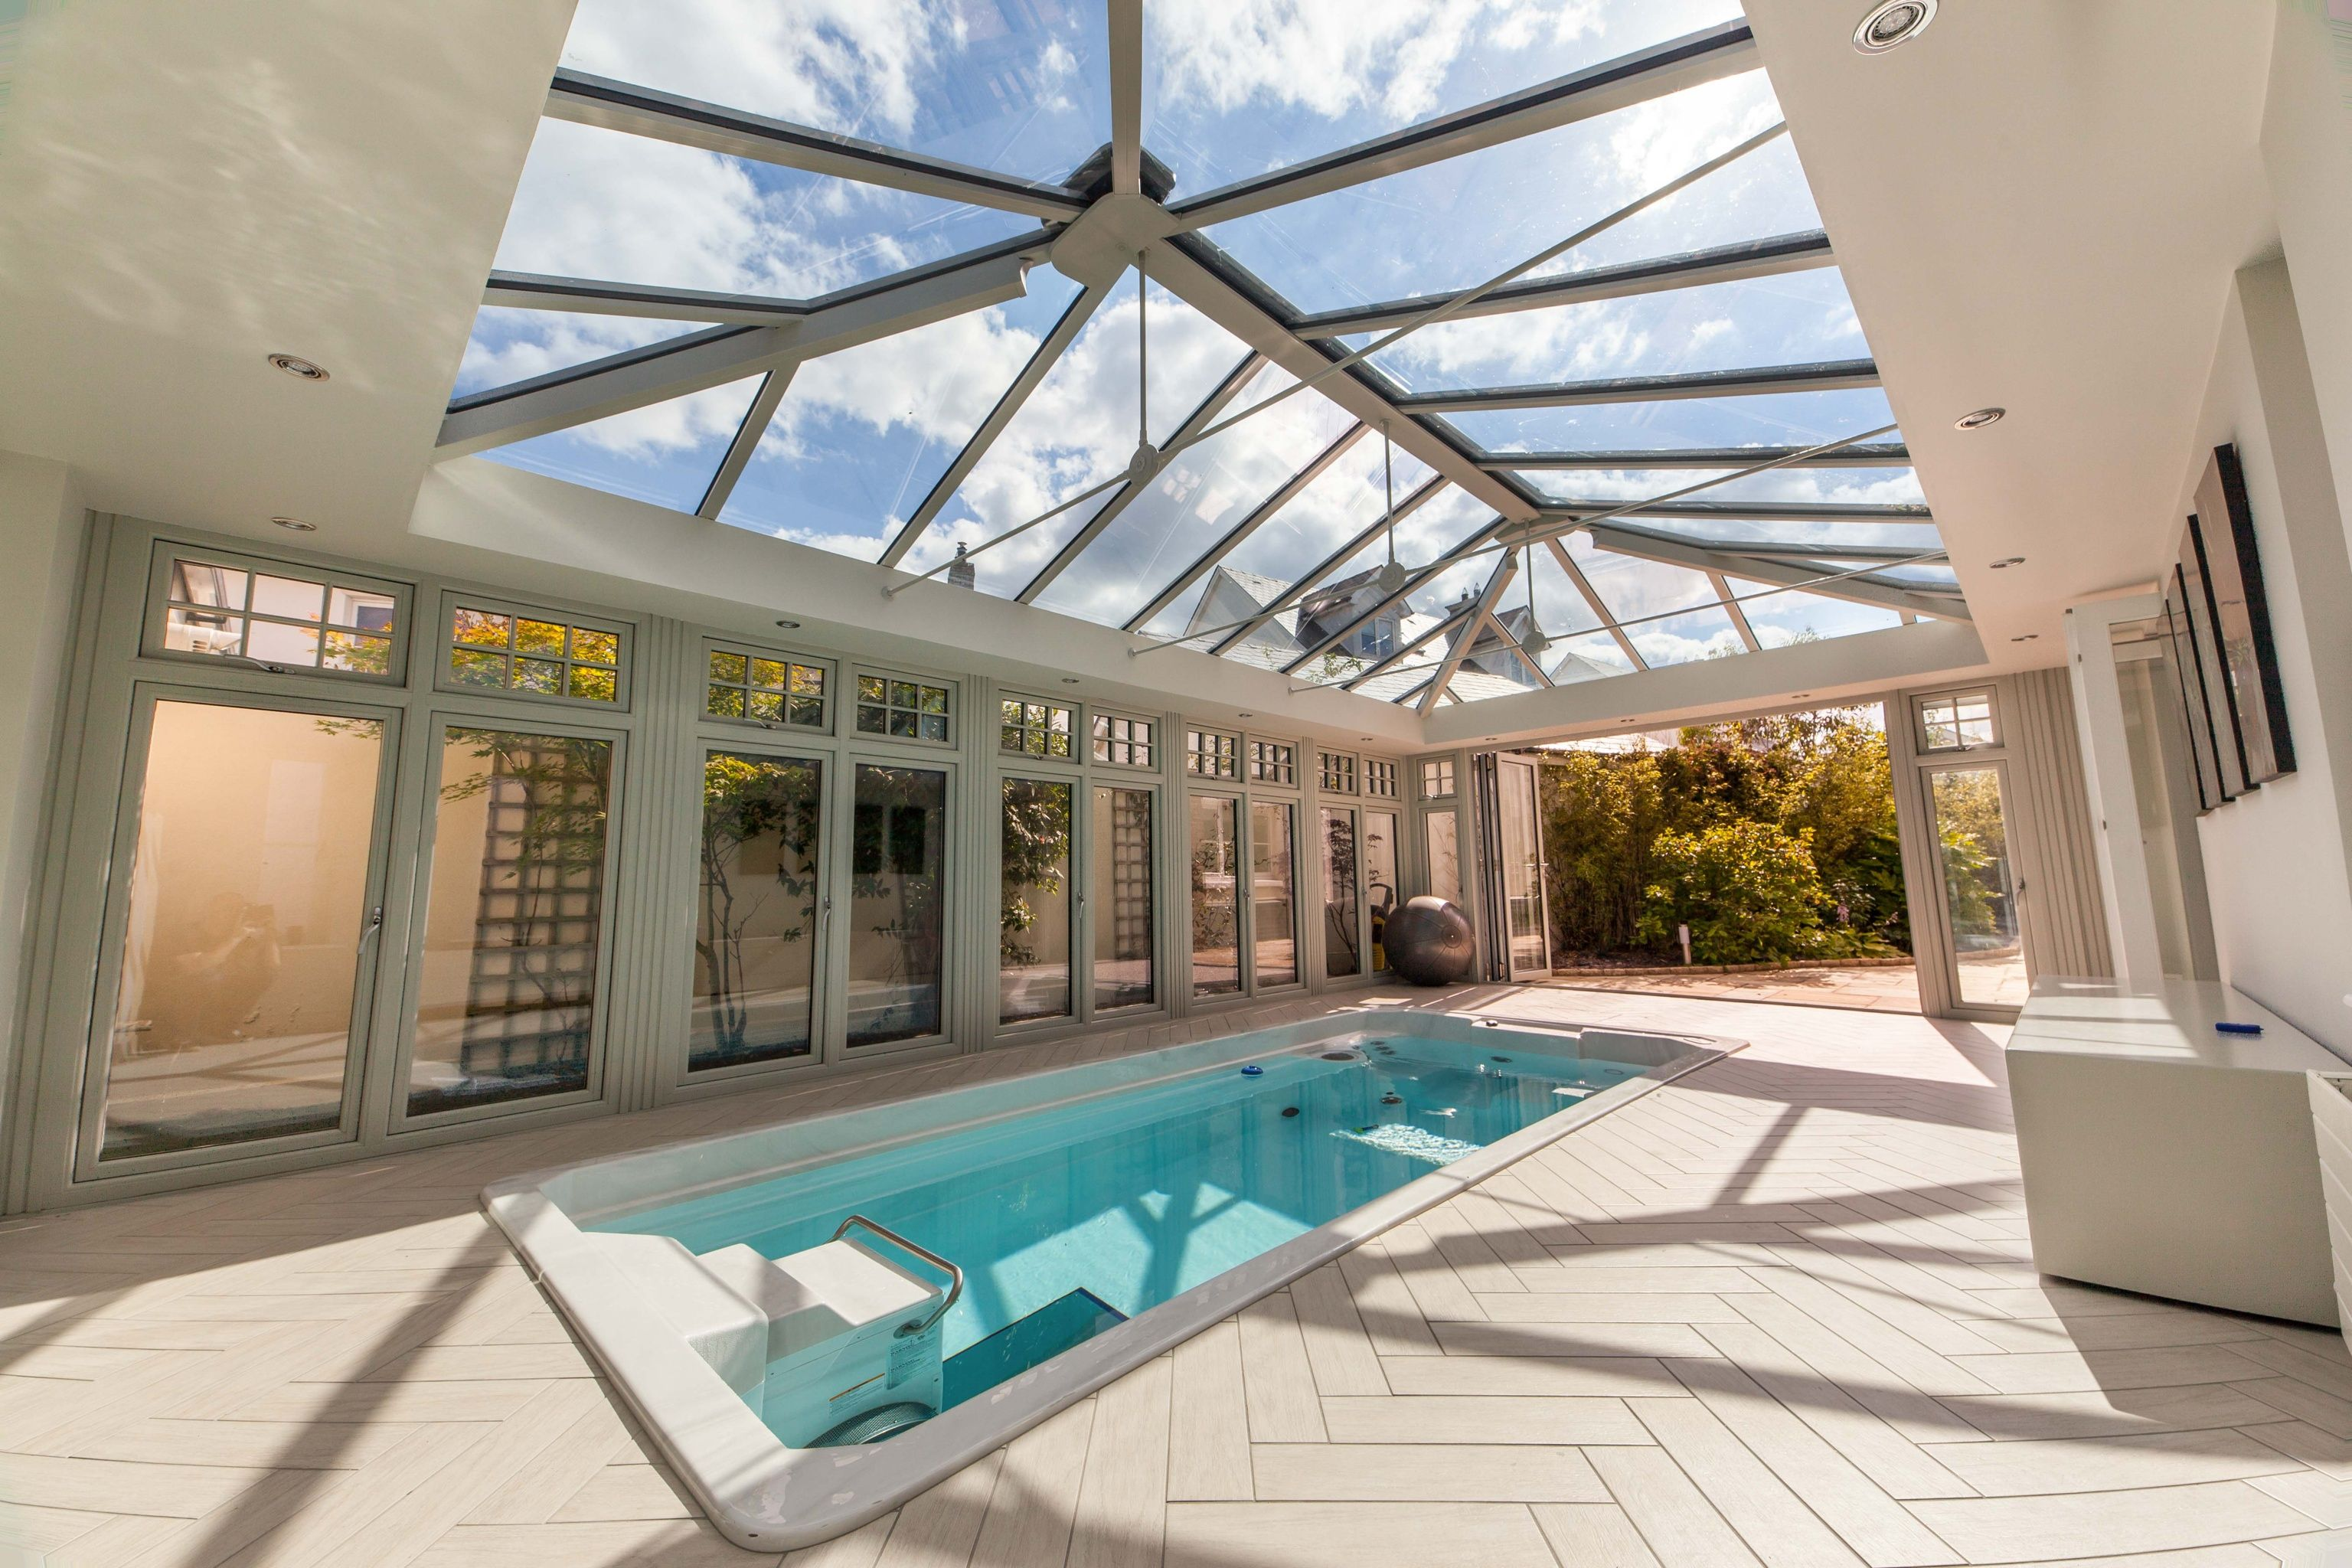 Photo 3 Of 5 Featuring The Endless Pool Swim Spa In A Beautiful Glass Conservatory Build Your Own Swim S Endless Pool Indoor Swimming Pool Design Pool Houses